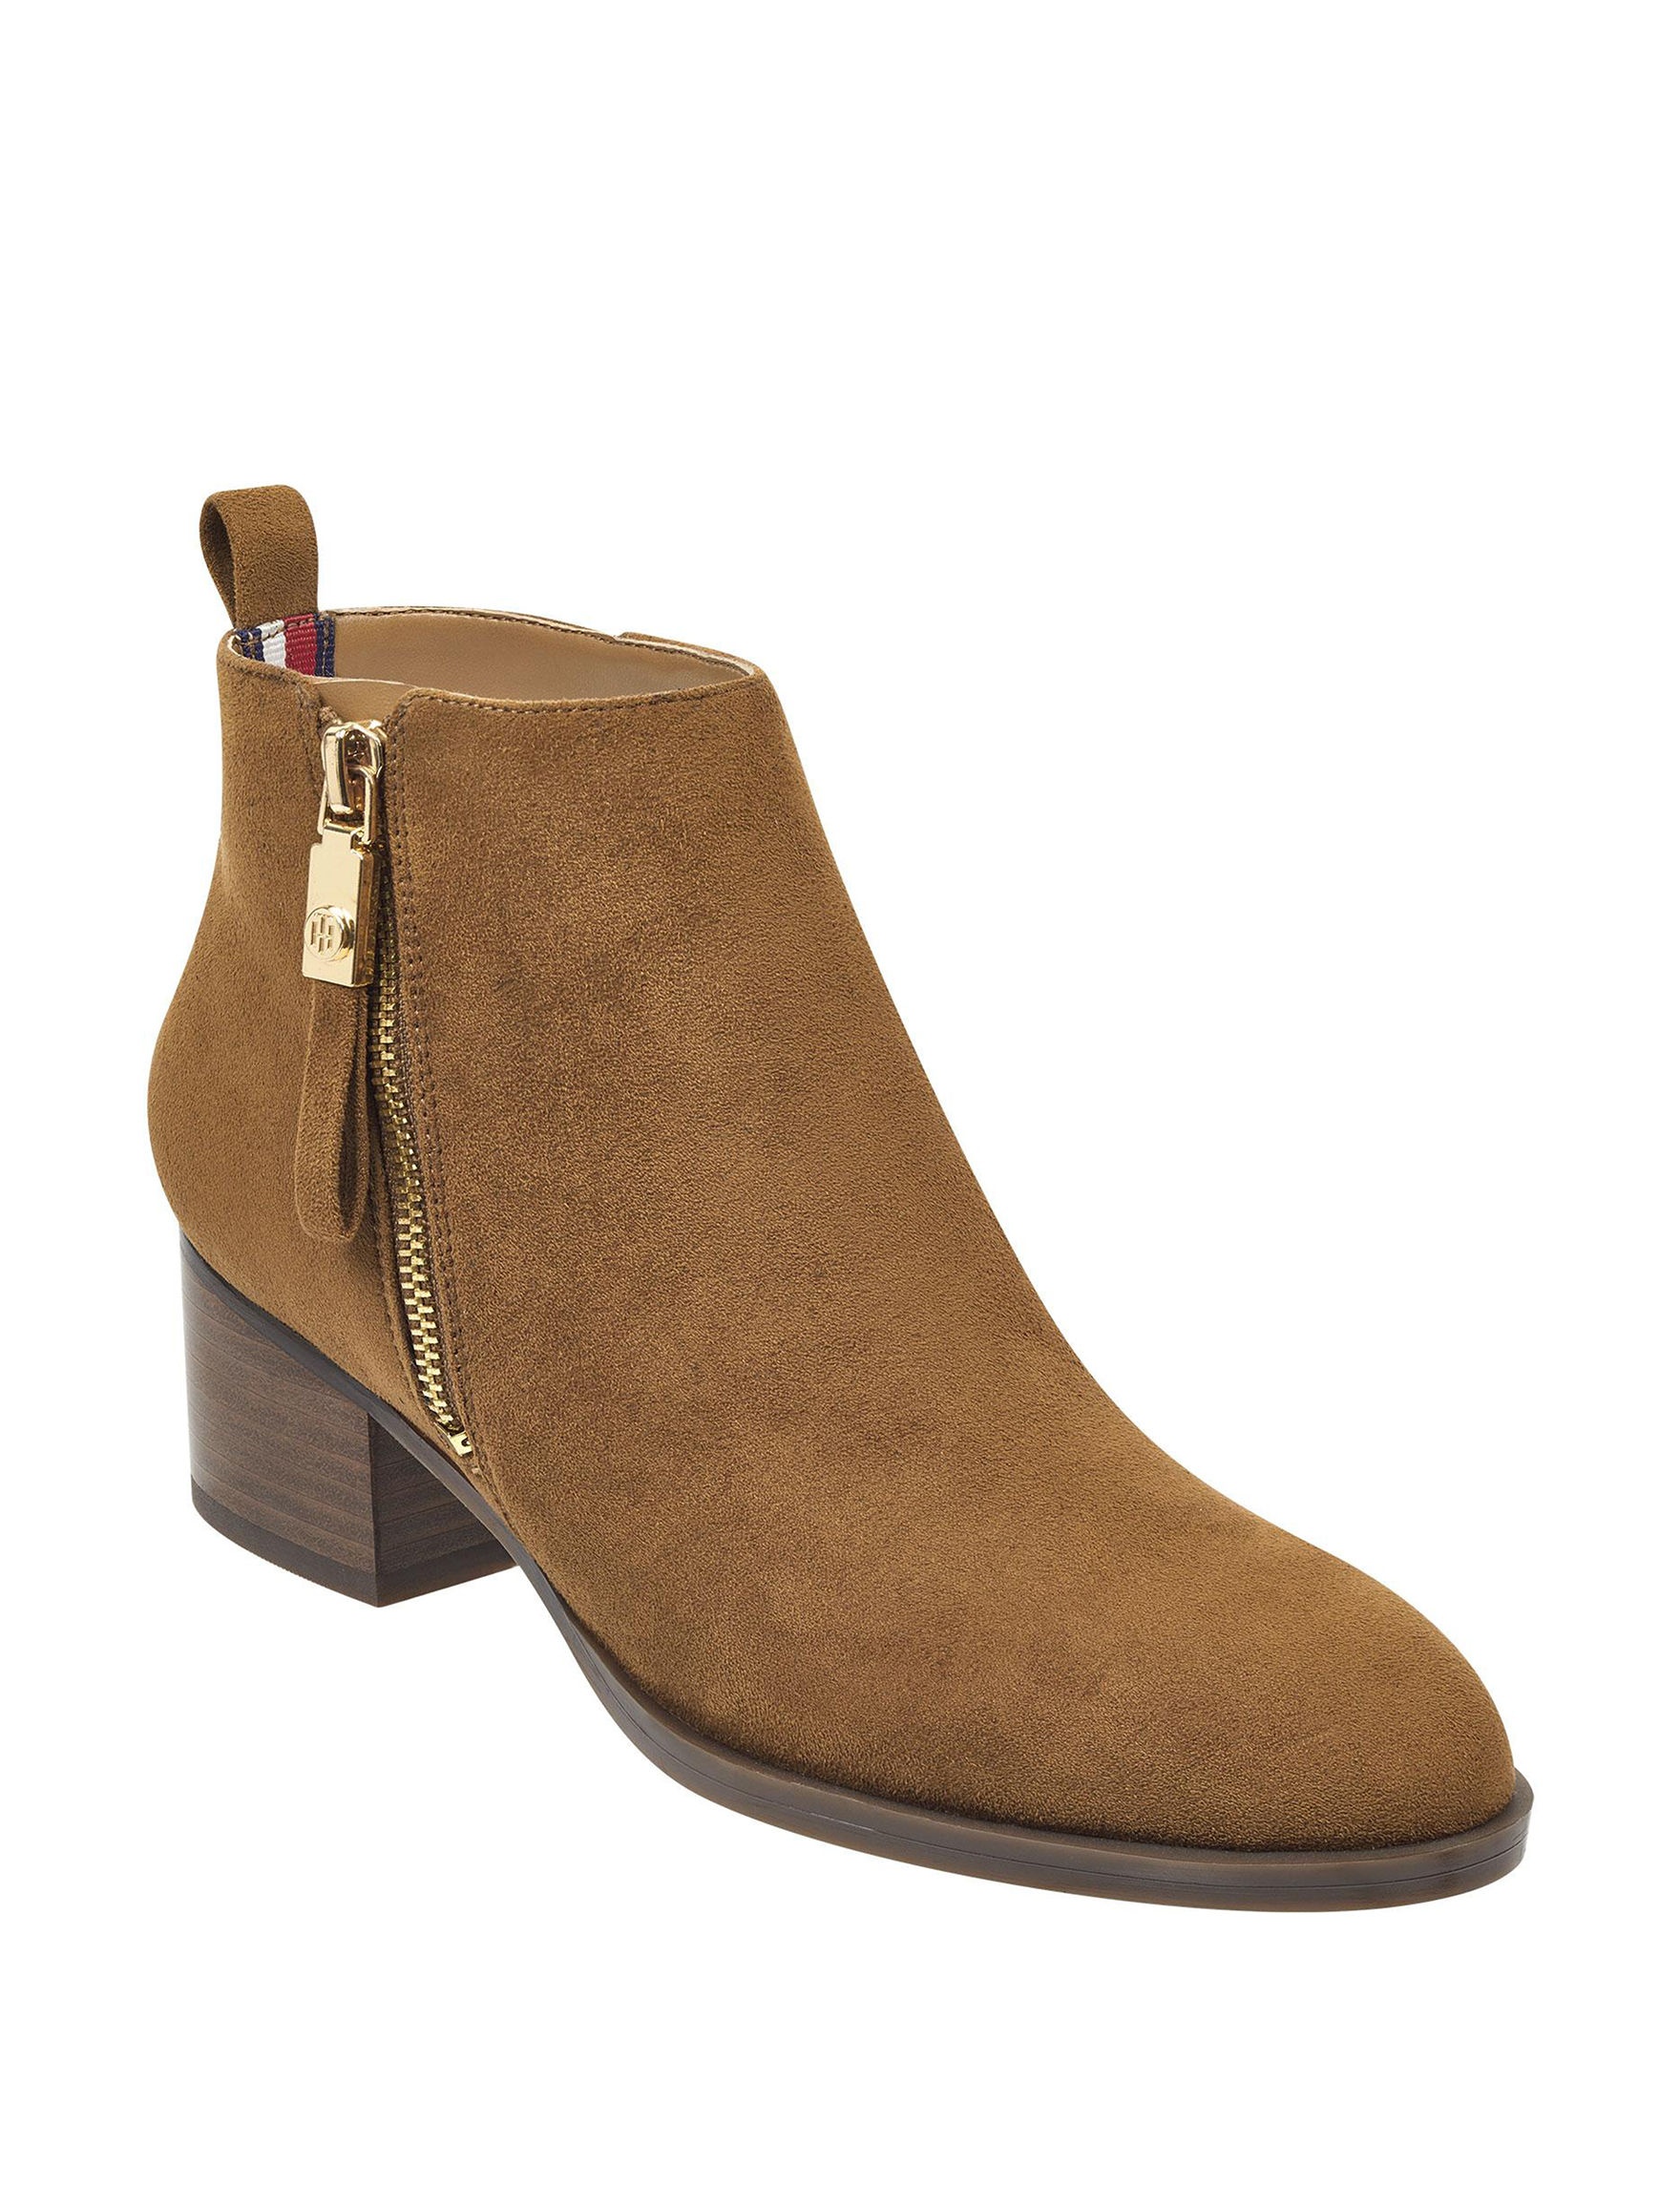 Tommy Hilfiger Beige Ankle Boots & Booties